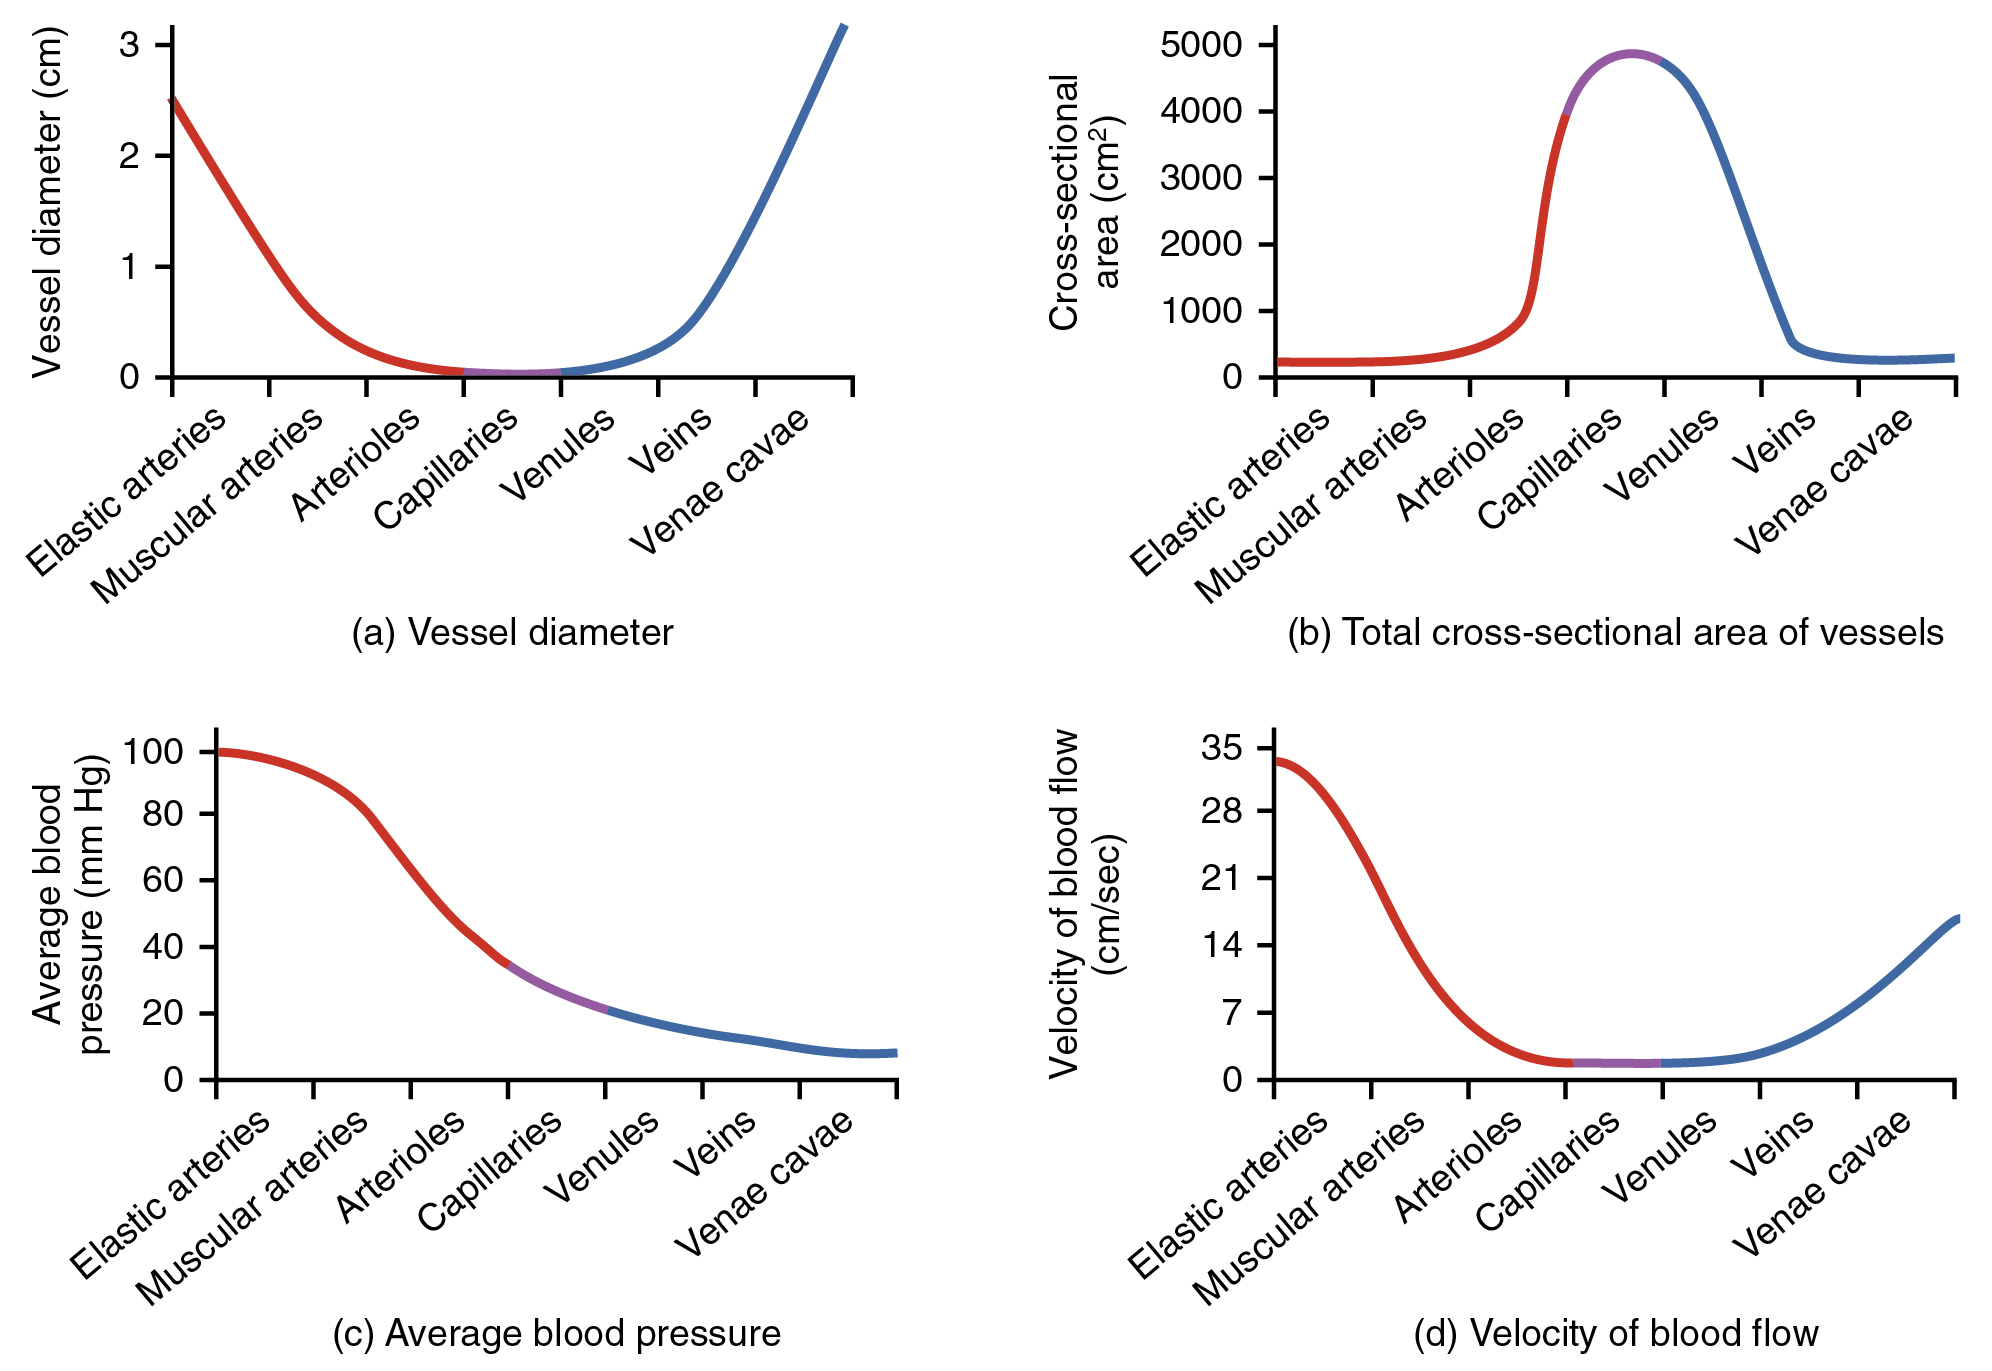 This figure shows four graphs. The top left graph shows the vessel diameter for different types of blood vessels. The top right panel shows cross-sectional area for different blood vessels. The bottom left panel shows the average blood pressure for different blood vessels, and the bottom right panel shows the velocity of blood flow in different blood vessels.